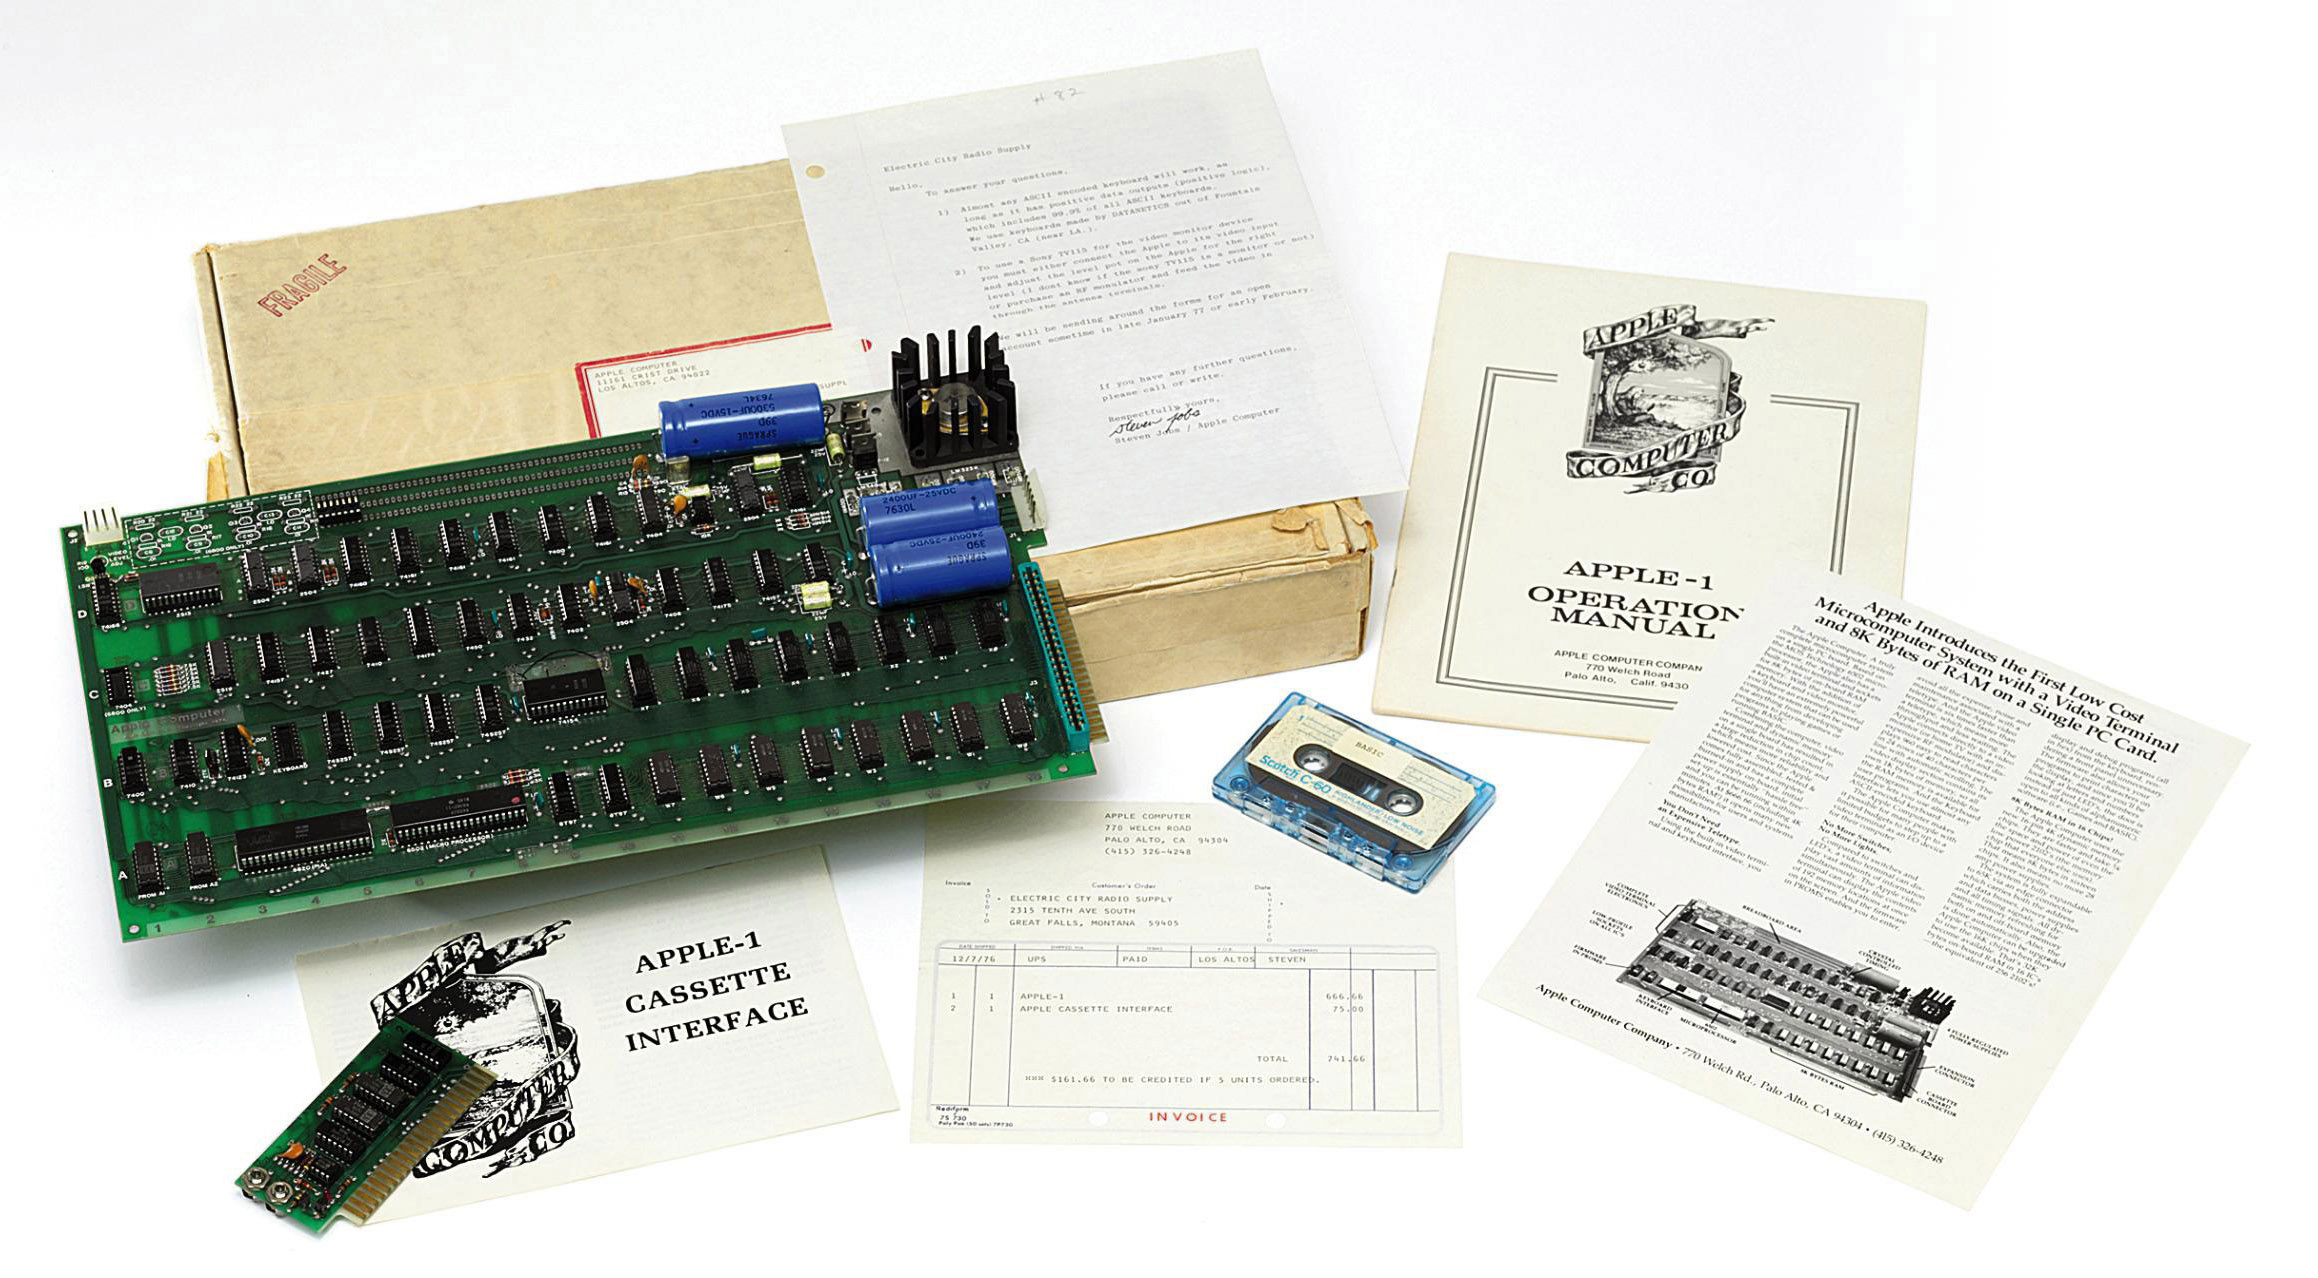 APPLE-1 -- Personal Computer.